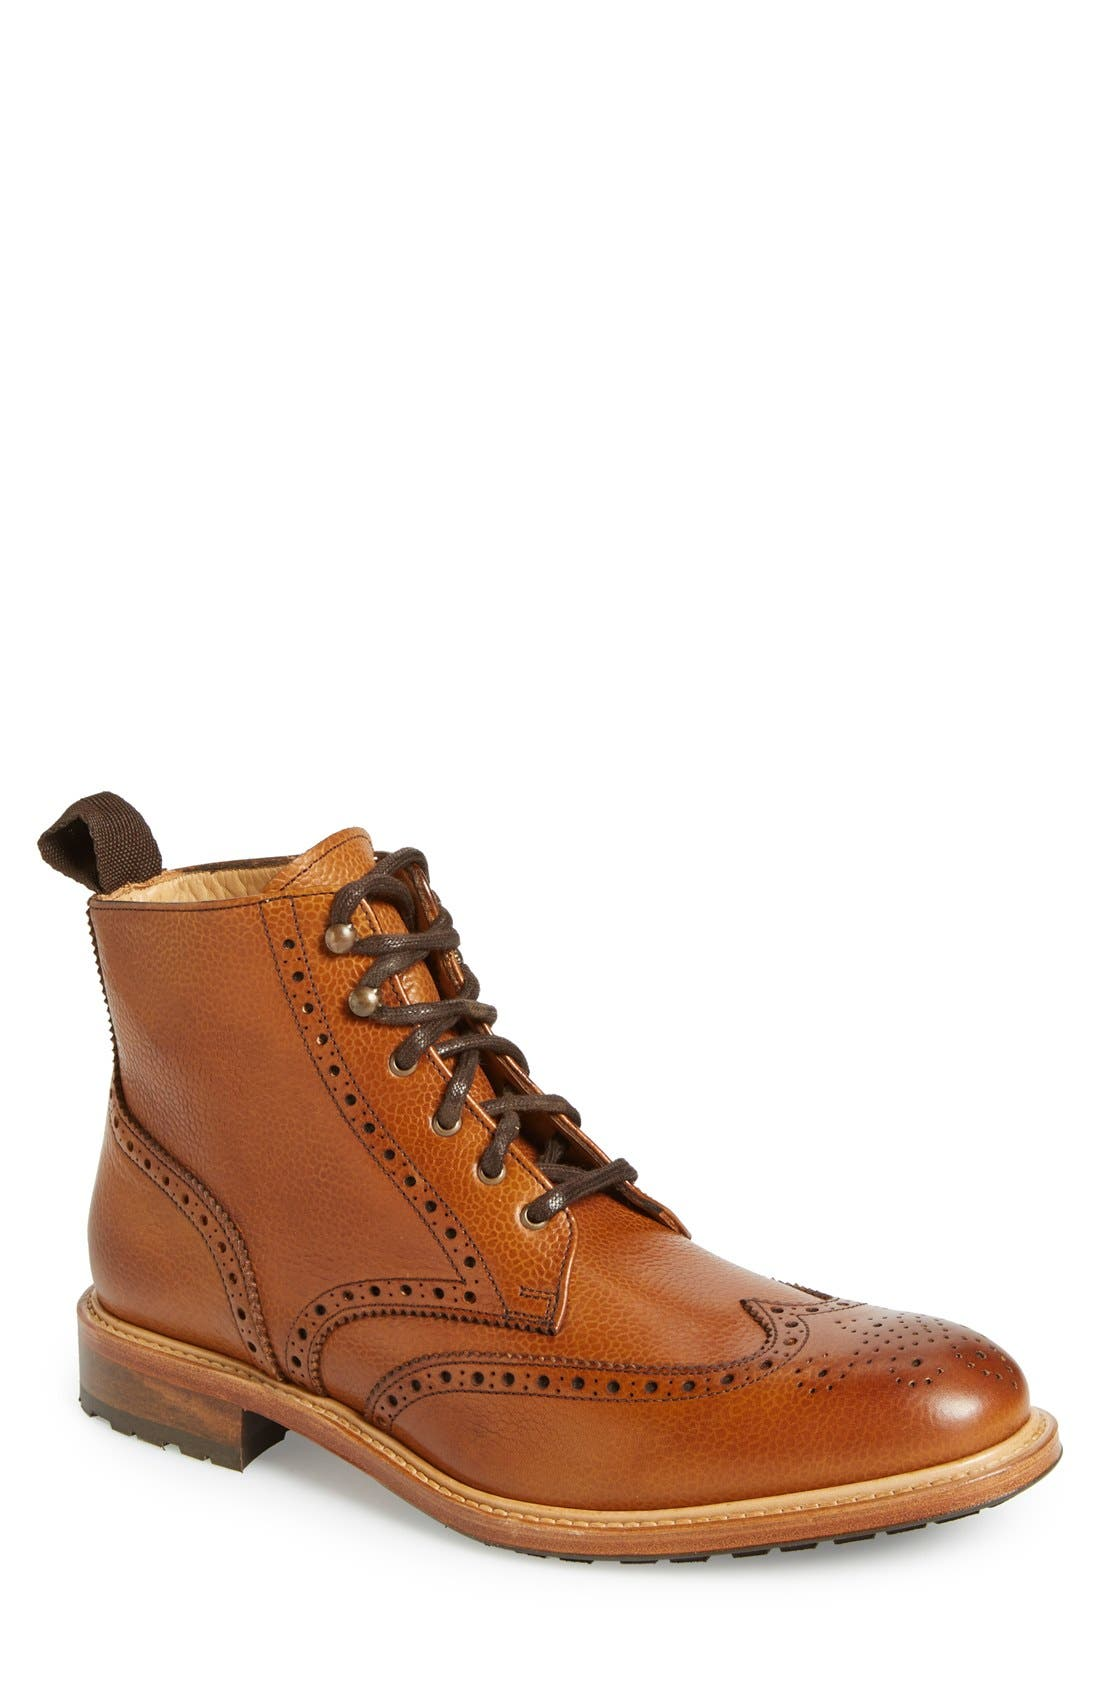 'McCormick' Wingtip Boot,                             Main thumbnail 1, color,                             230